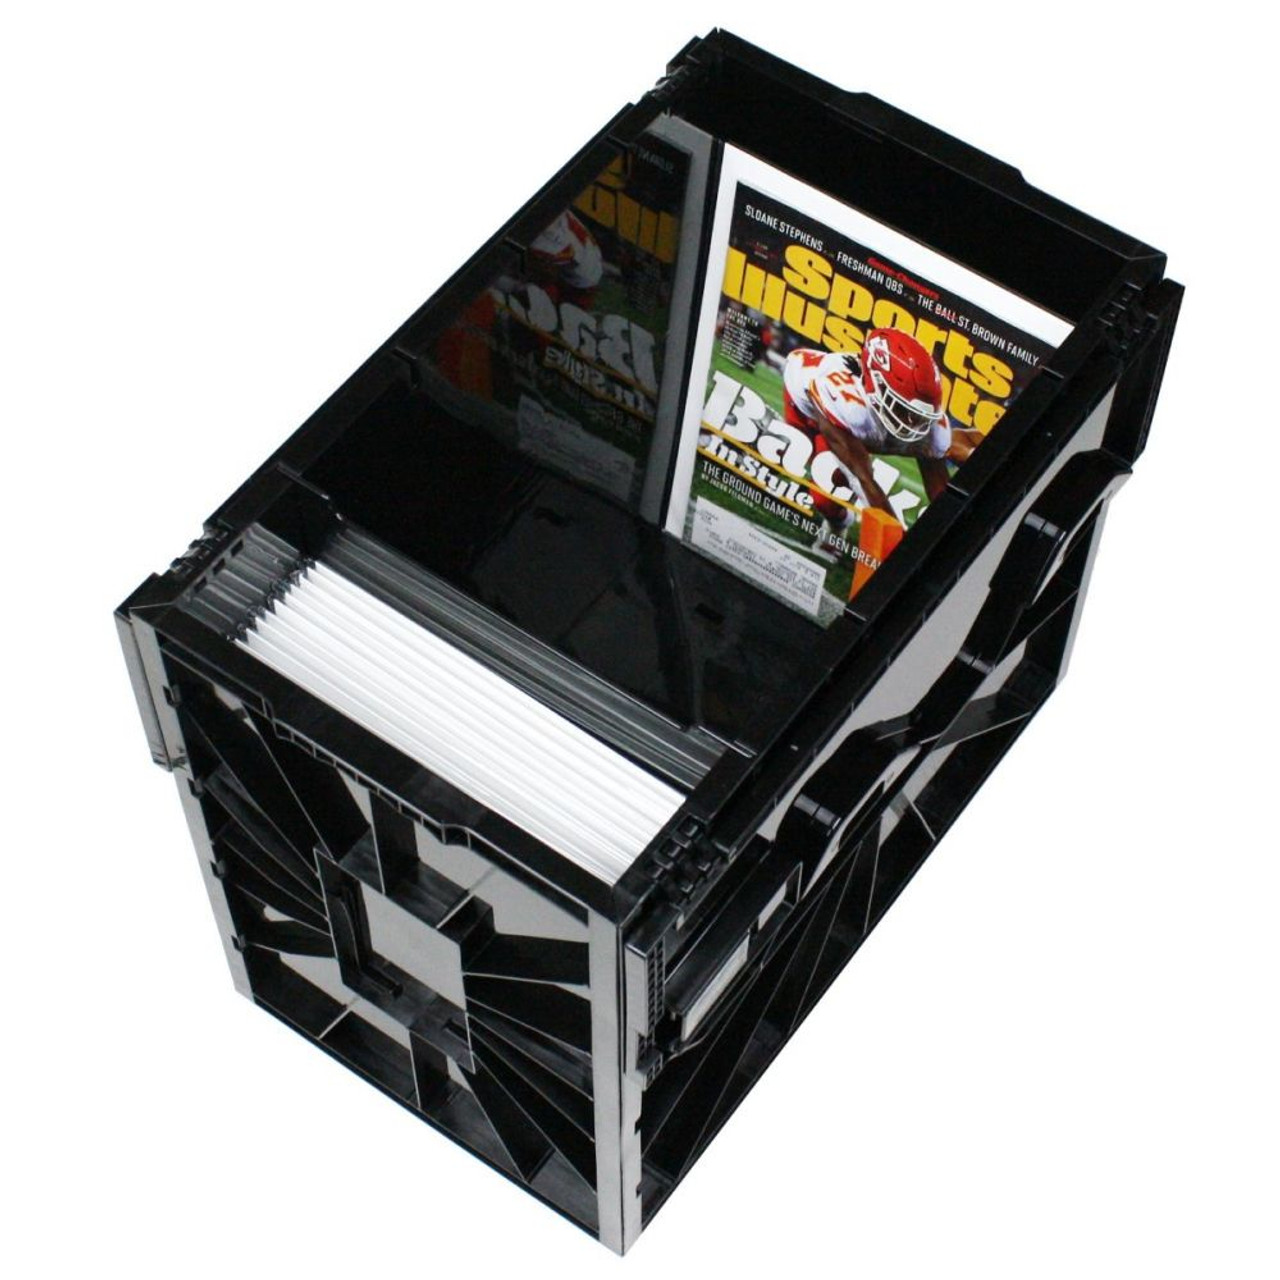 BCW Graded Comic Book Short Box Bin